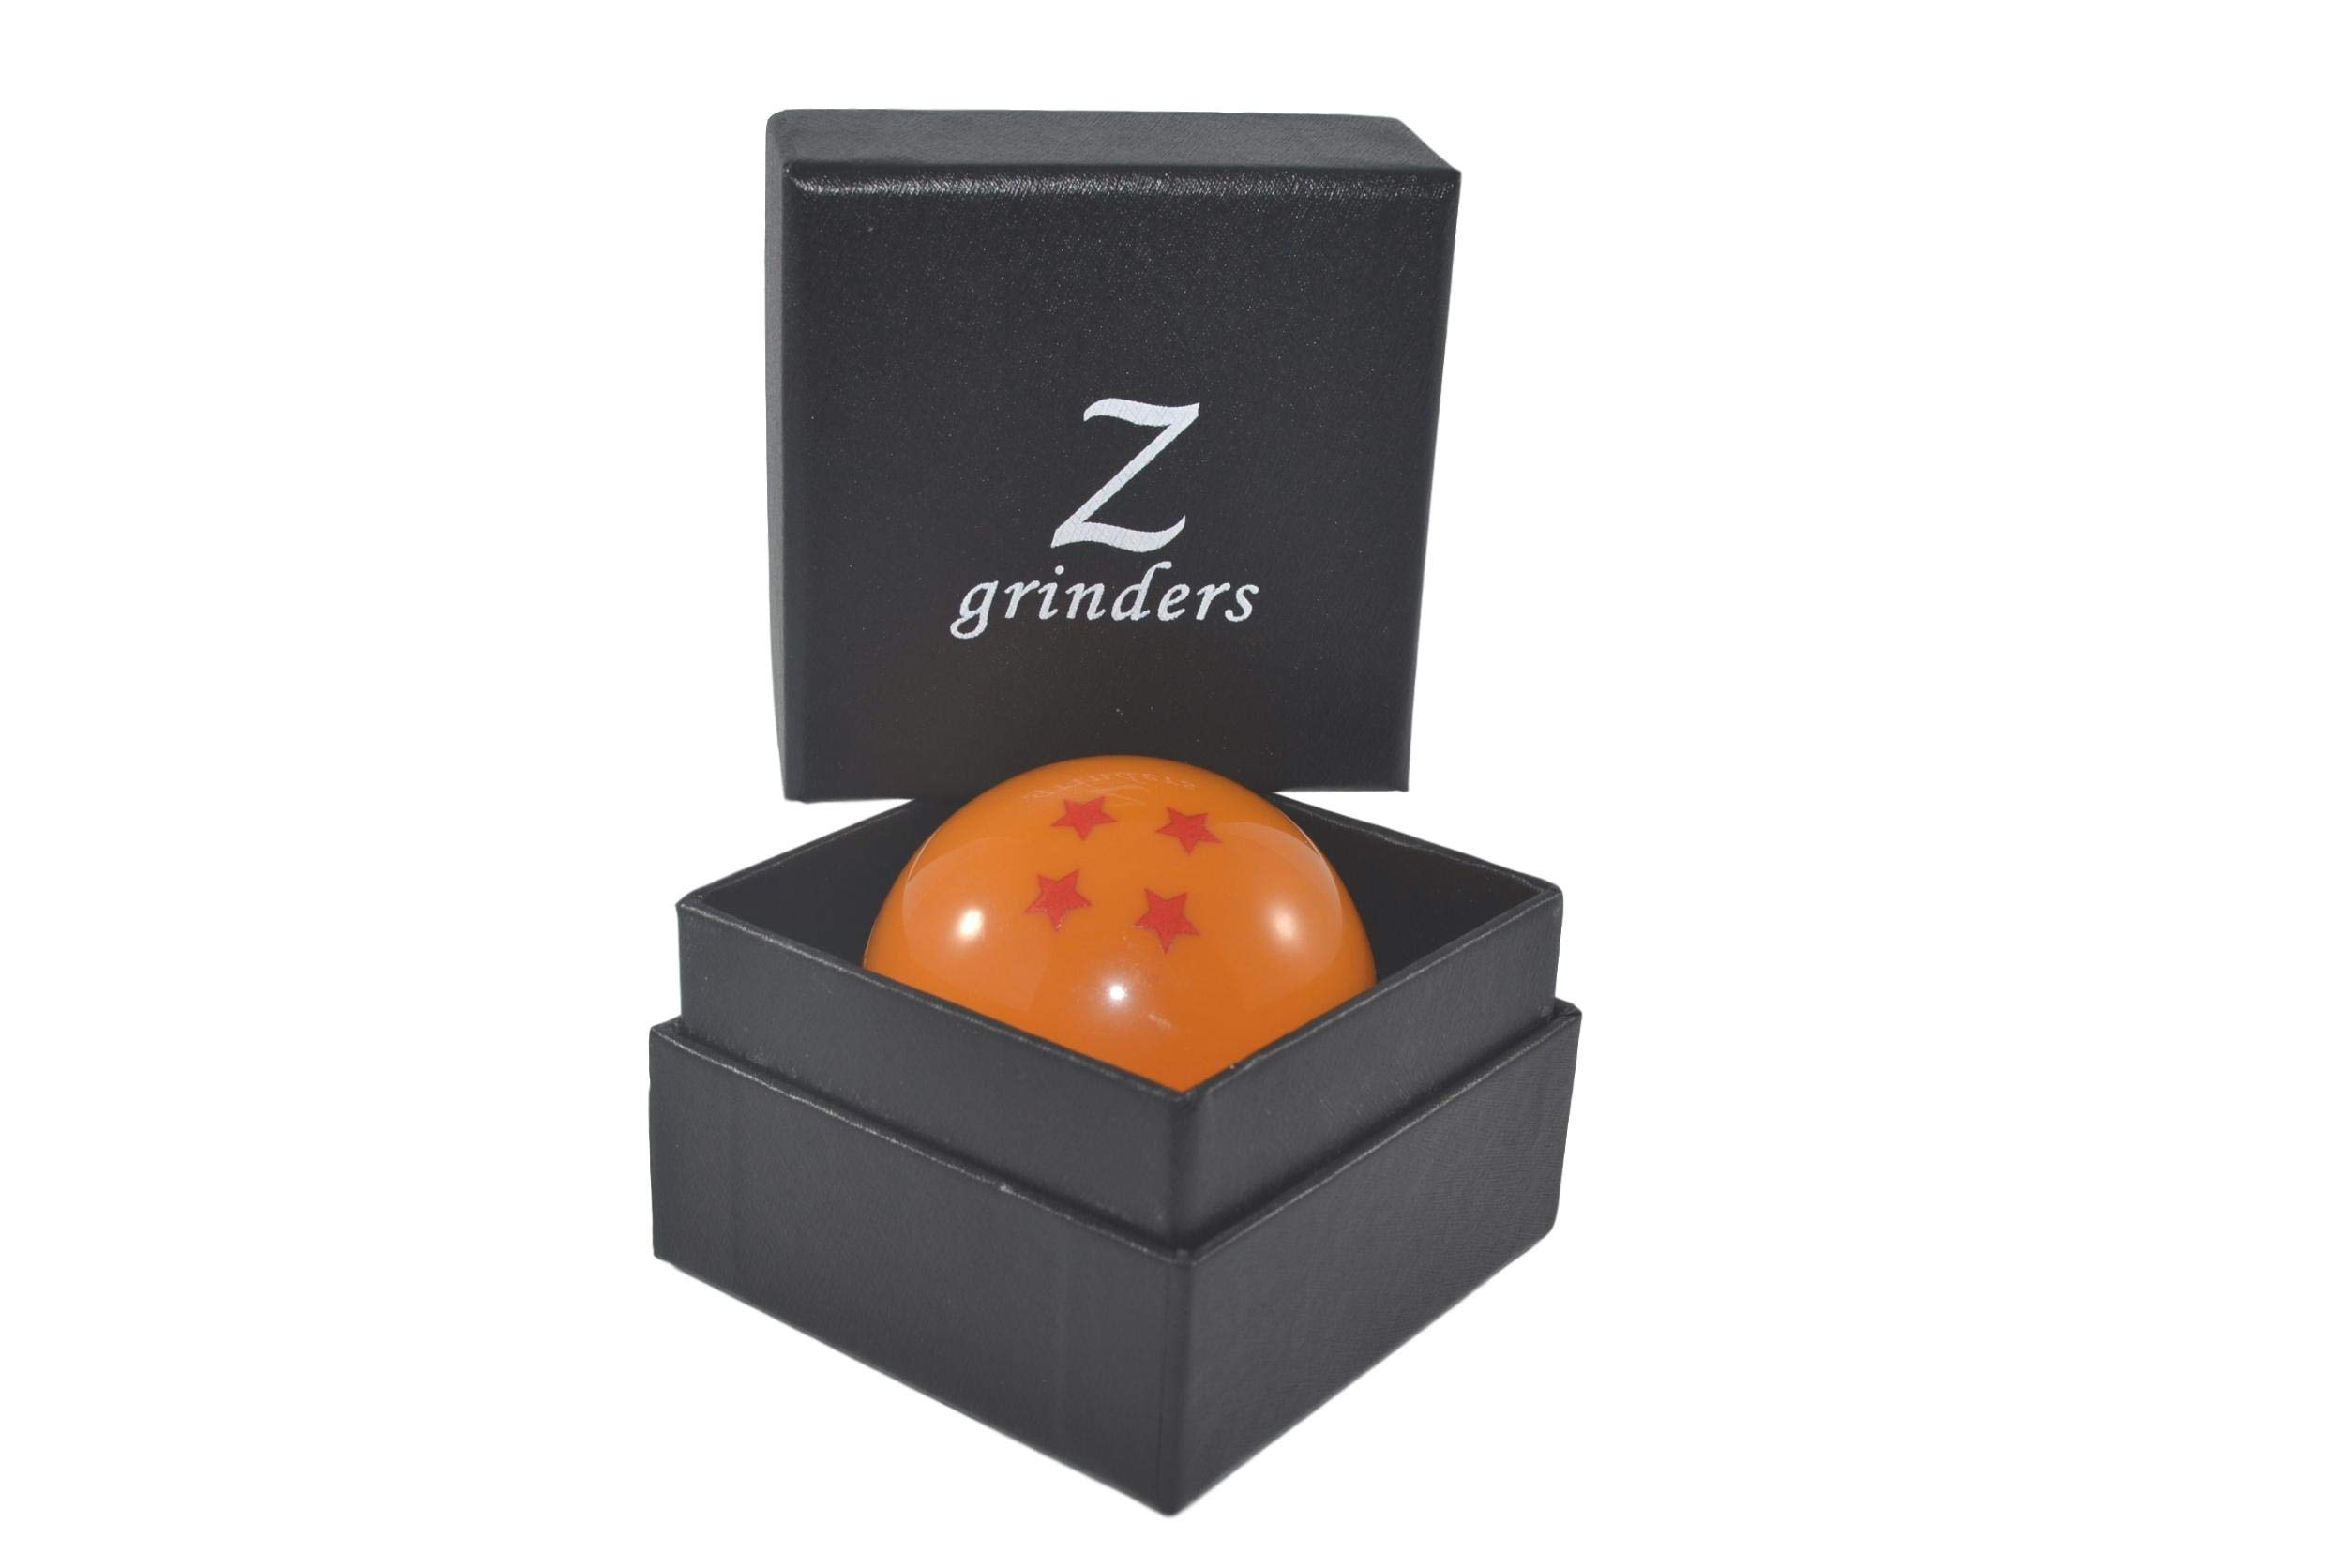 Premium Dragon Ball Z Herb Grinder - 3 Piece Magnetic Grinder Used for Herbs, Tobacco, and Spices - Gift Box Included